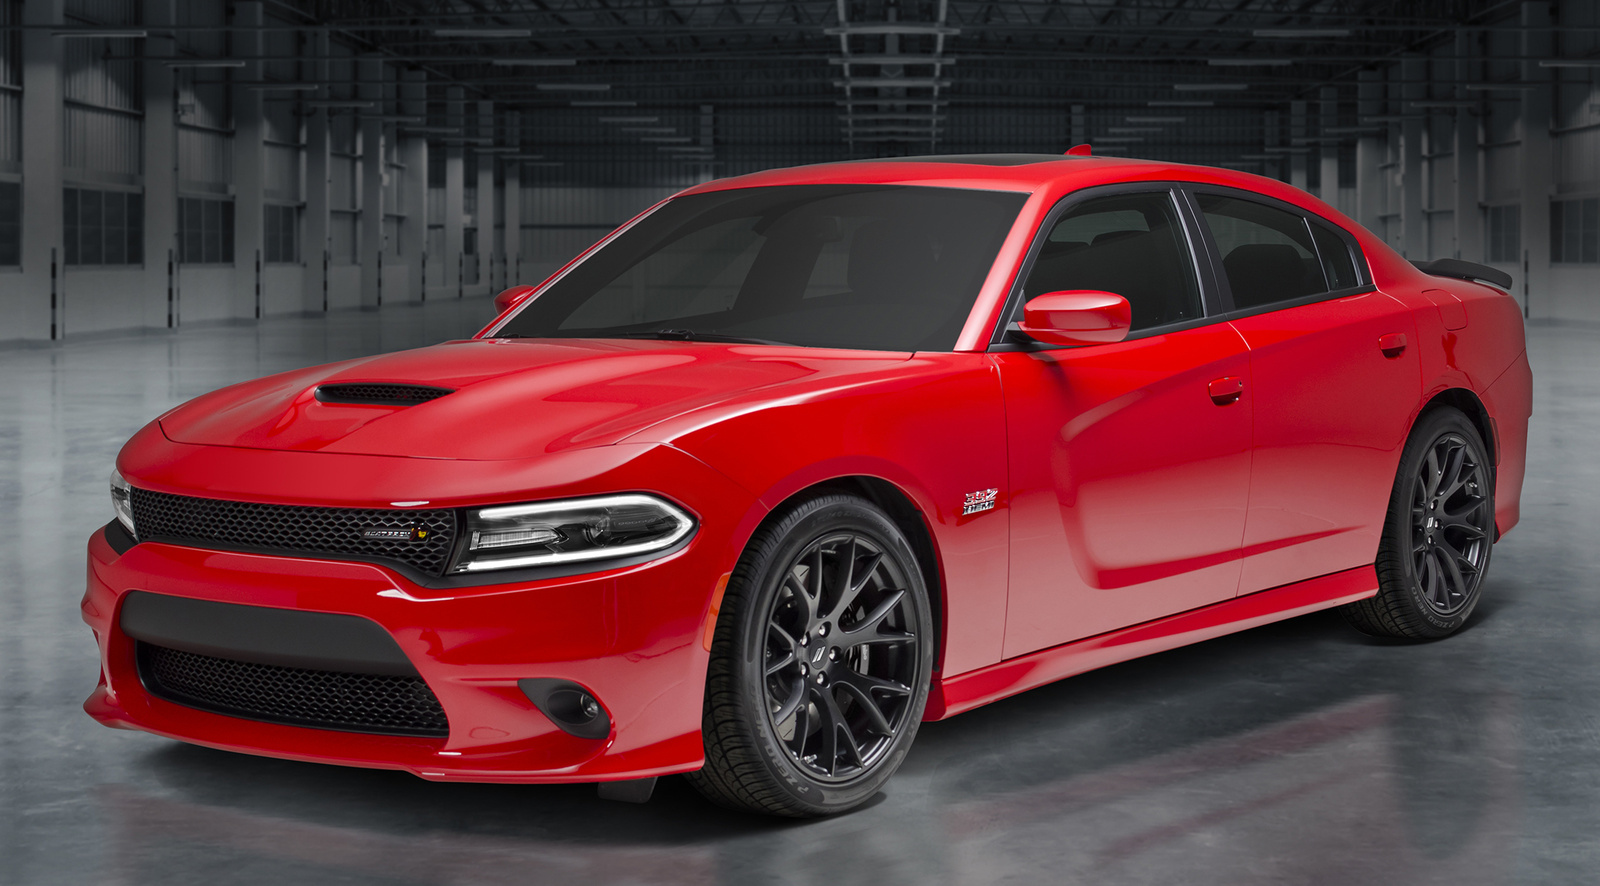 2017 dodge charger srt hellcat for sale cargurus 2018. Black Bedroom Furniture Sets. Home Design Ideas